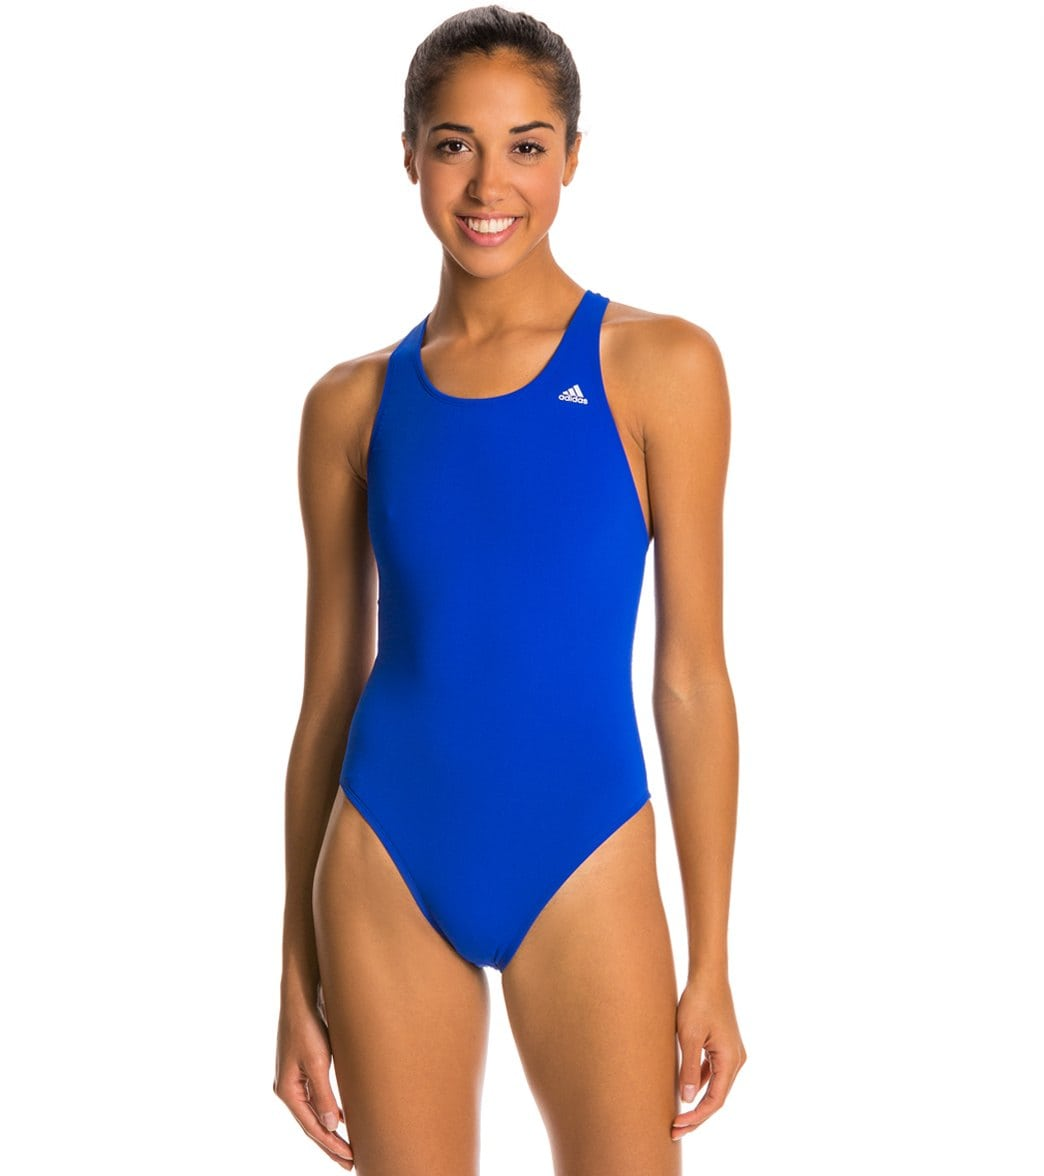 Adidas Women's Solids V Back One Piece Swimsuit